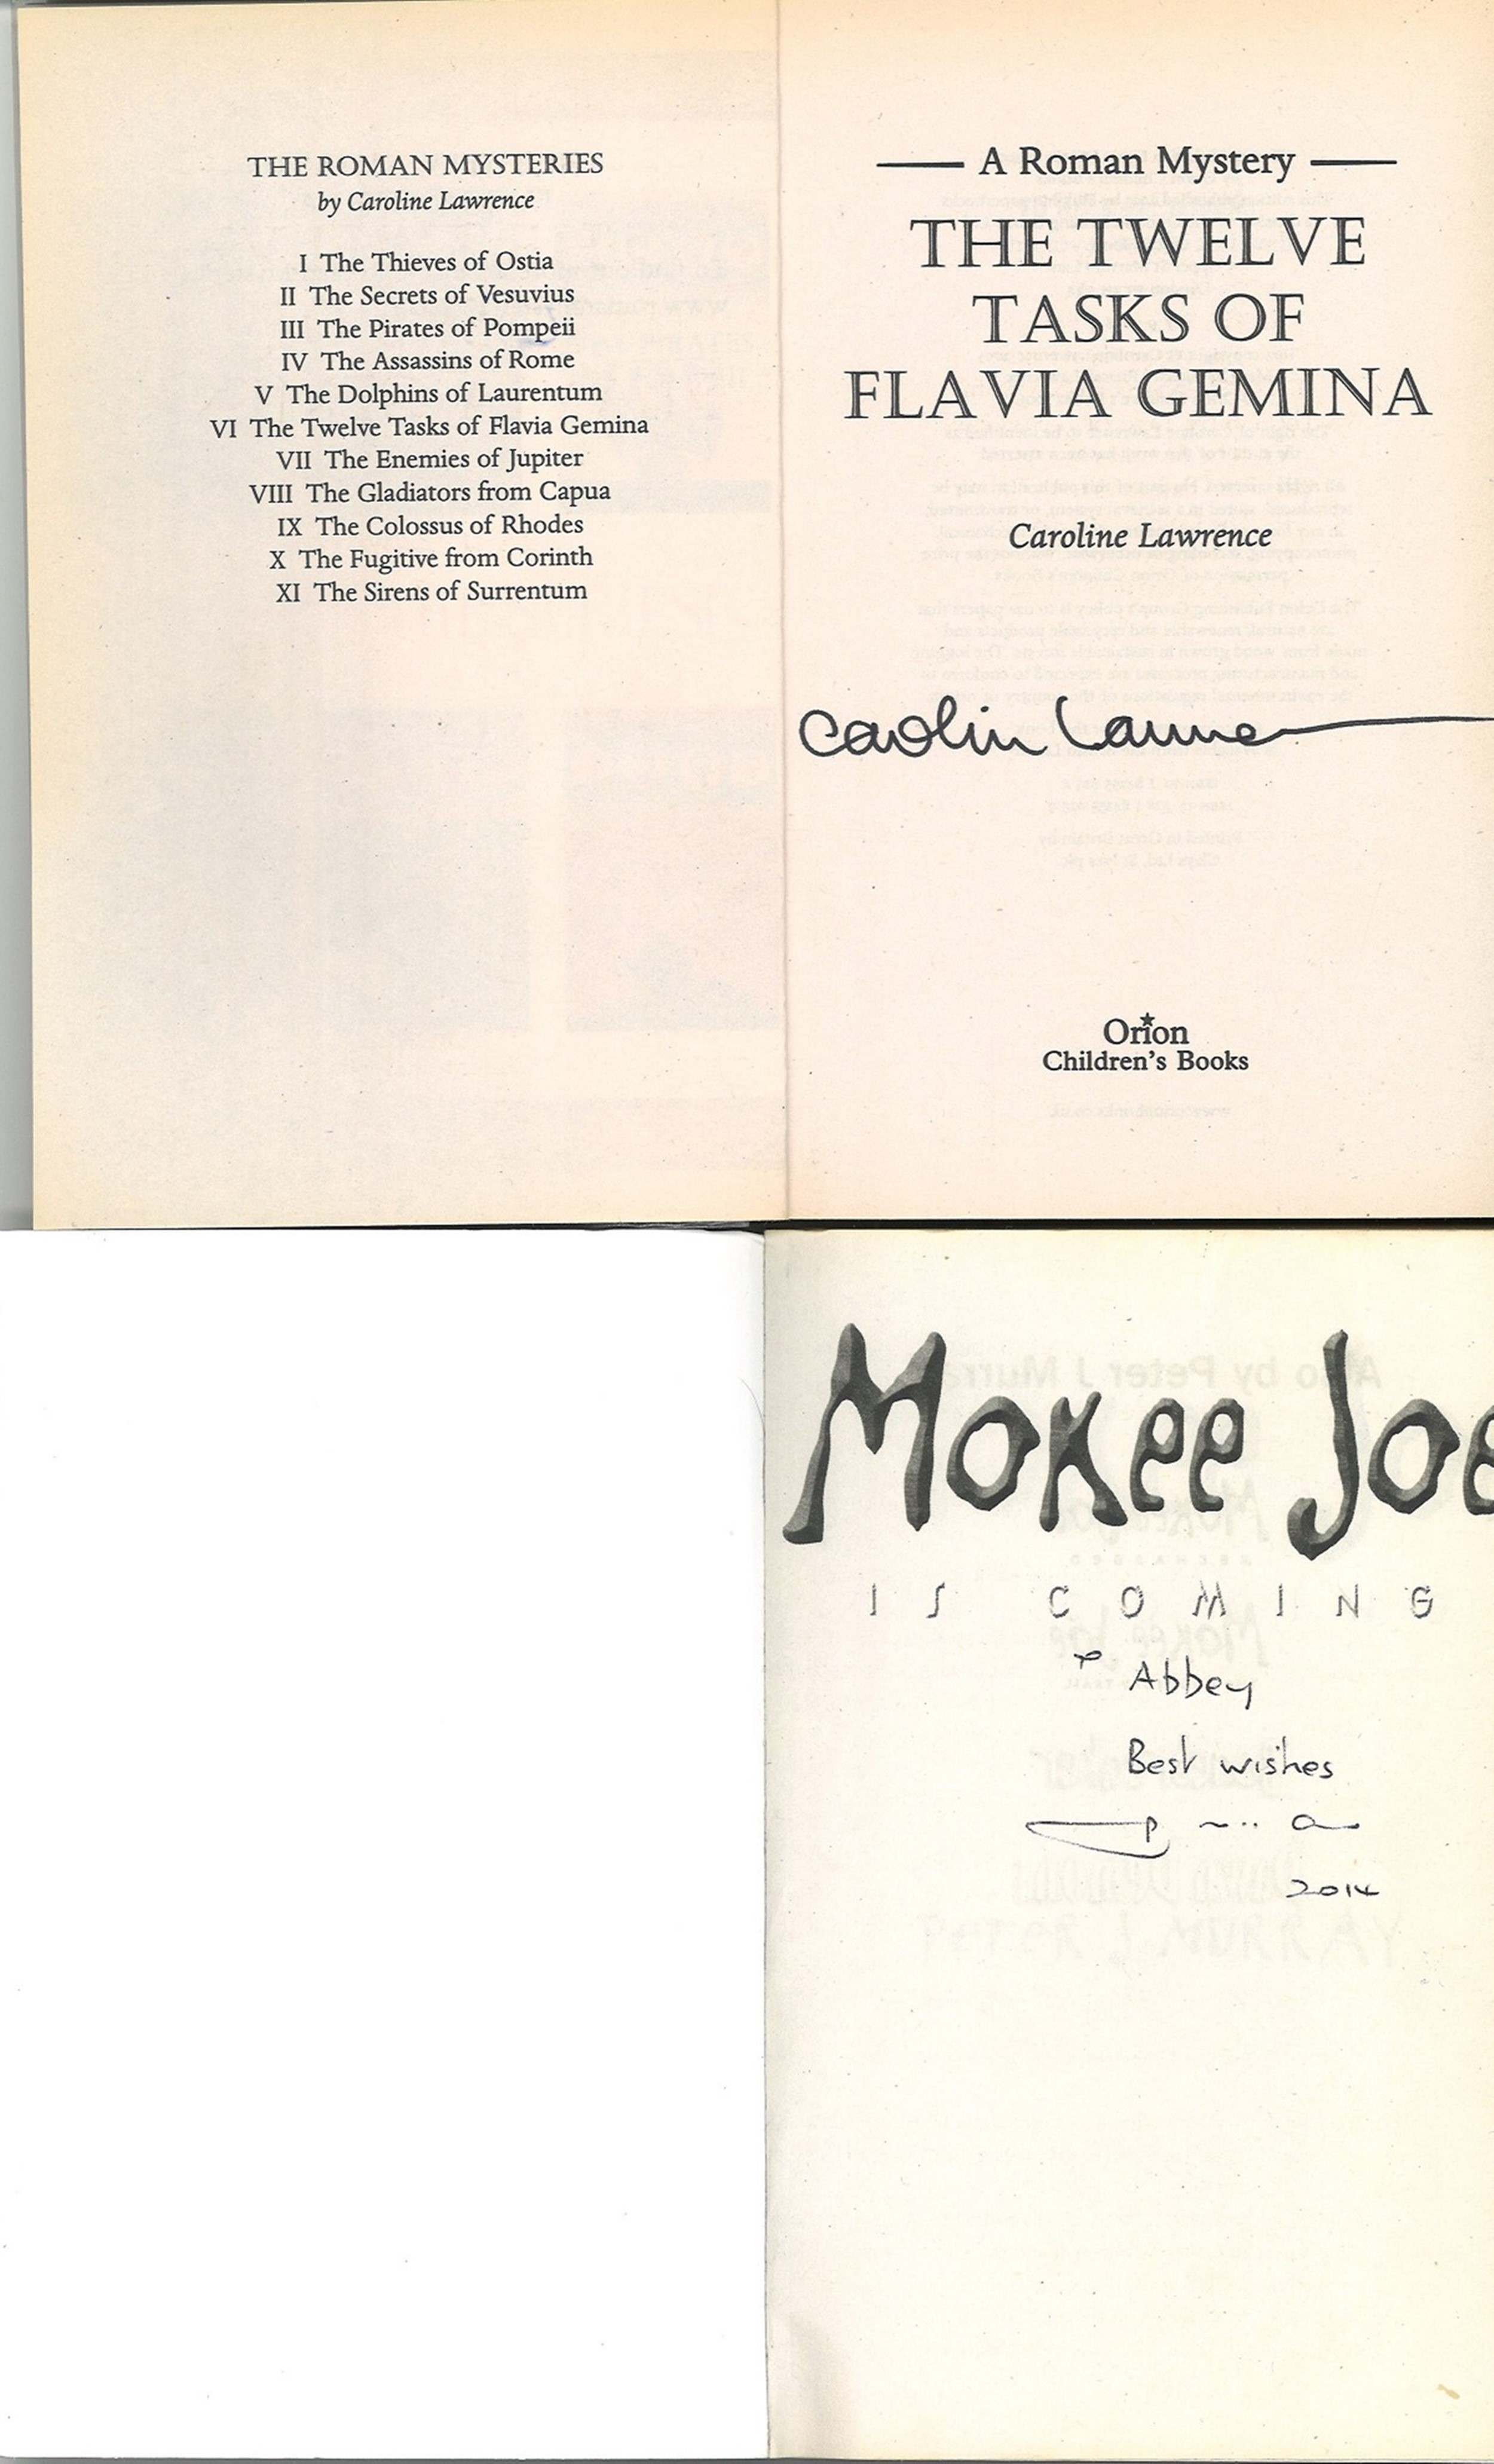 5 Signed Paperback Books, The Hunters Handbook, The Tenth Circle, Monkey Joe, The Sirens of - Image 4 of 6